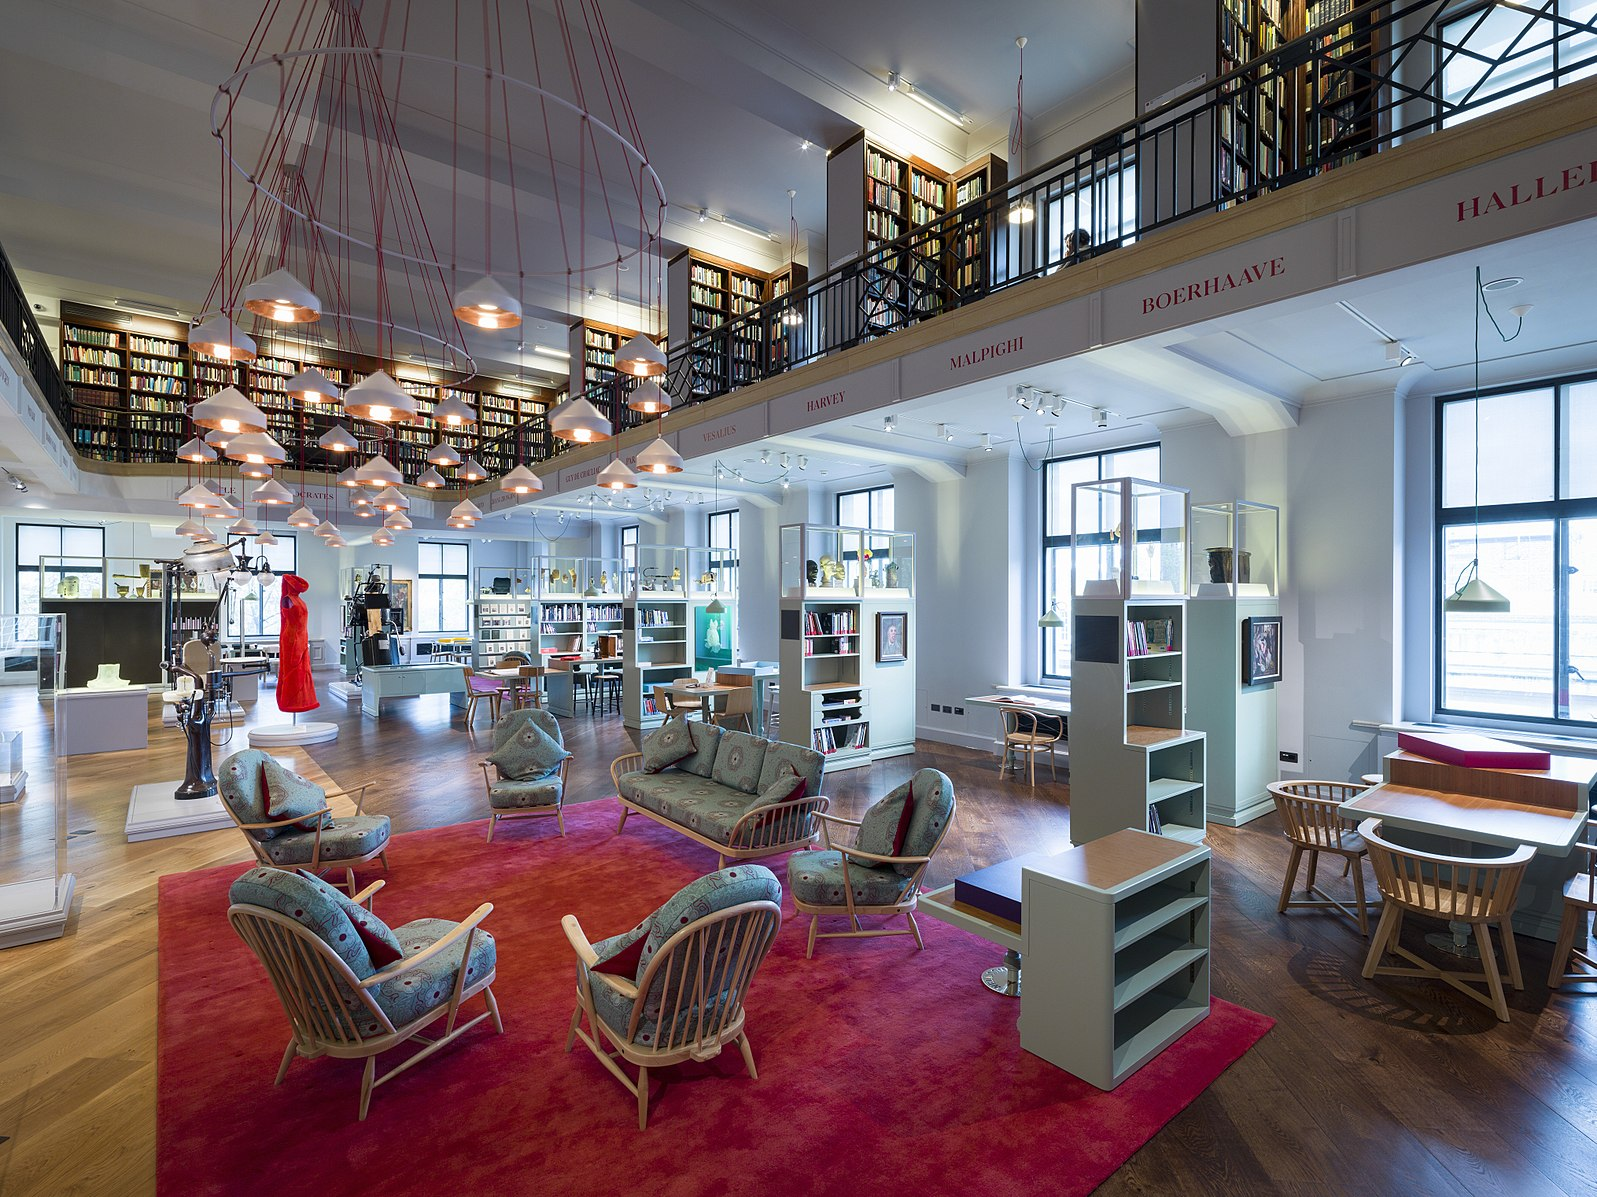 A photo of the reading room in Wellcome Collection. A red carpet with wooden arm chairs surrounded by bookshelves underneath a feature light of red wires and warm yellow lampshades.